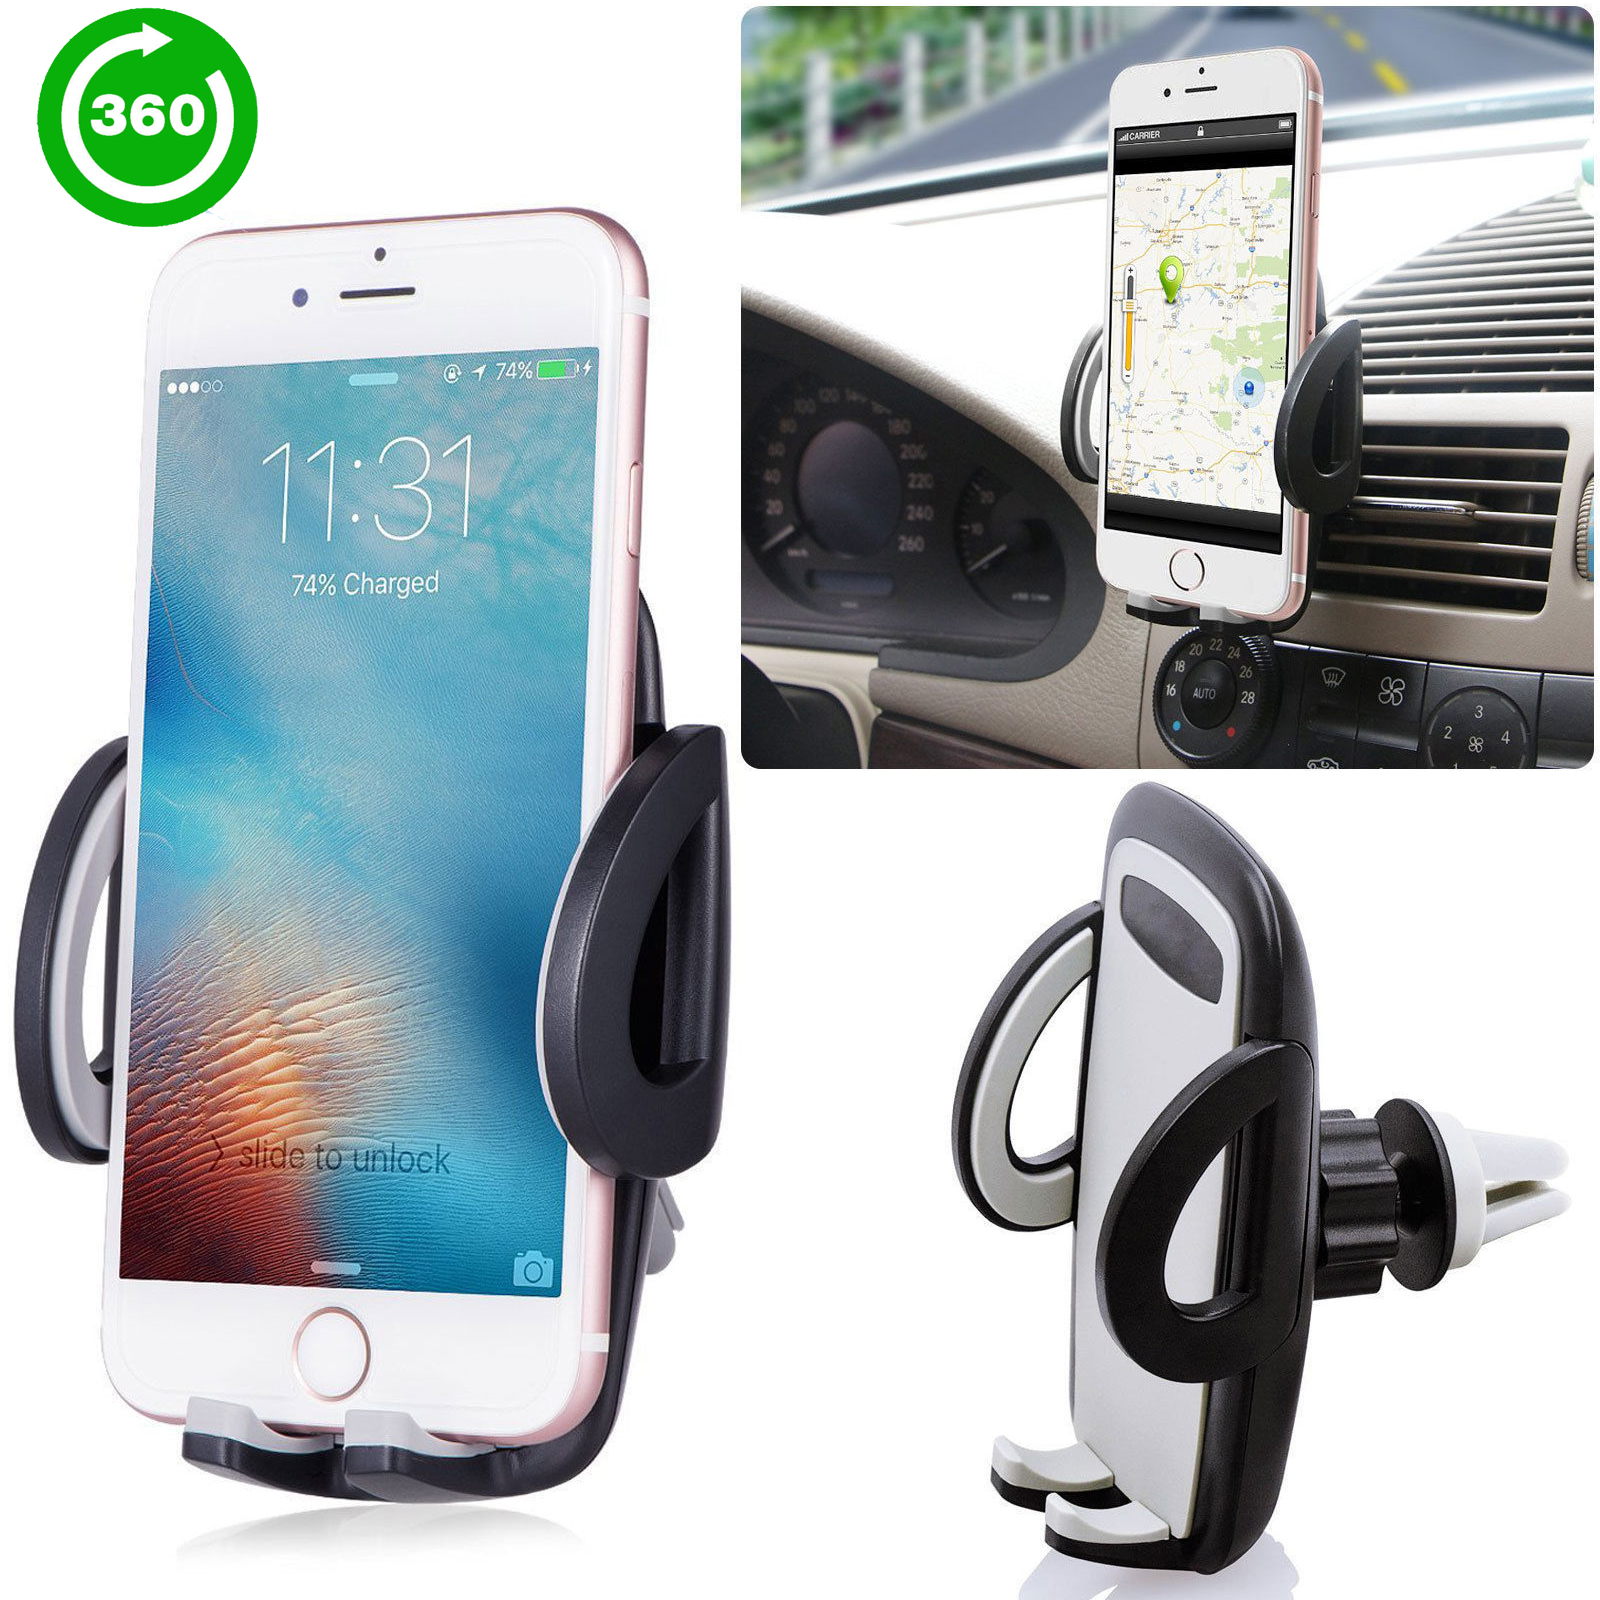 TSV Universal Smartphone Car Air Vent Mount Holder Cradle Compatible with iPhone X 8 8 Plus 7 7 Plus SE 6s 6 Plus 6 5s 5 4s 4 Samsung Galaxy S6 S5 S4 LG Nexus Sony Nokia and More